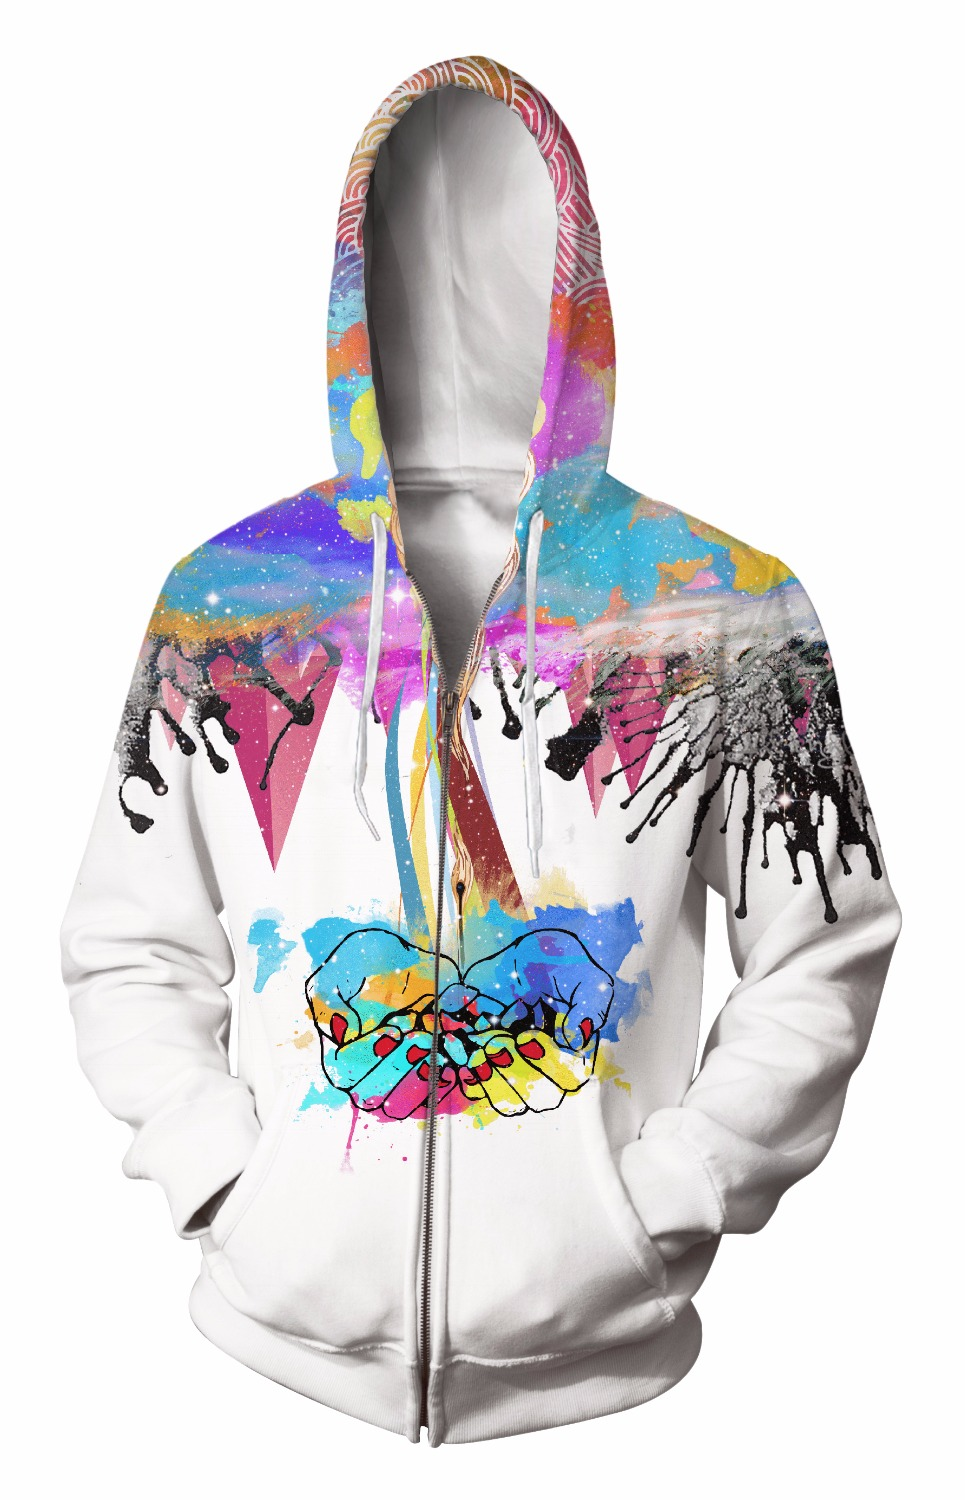 Zip-Up Hoodie 3d Print Soft cartoon picture Clothing Women Men Tops Hooded Casual Zipper Sweatshirts Outfits Coats Sweat factory